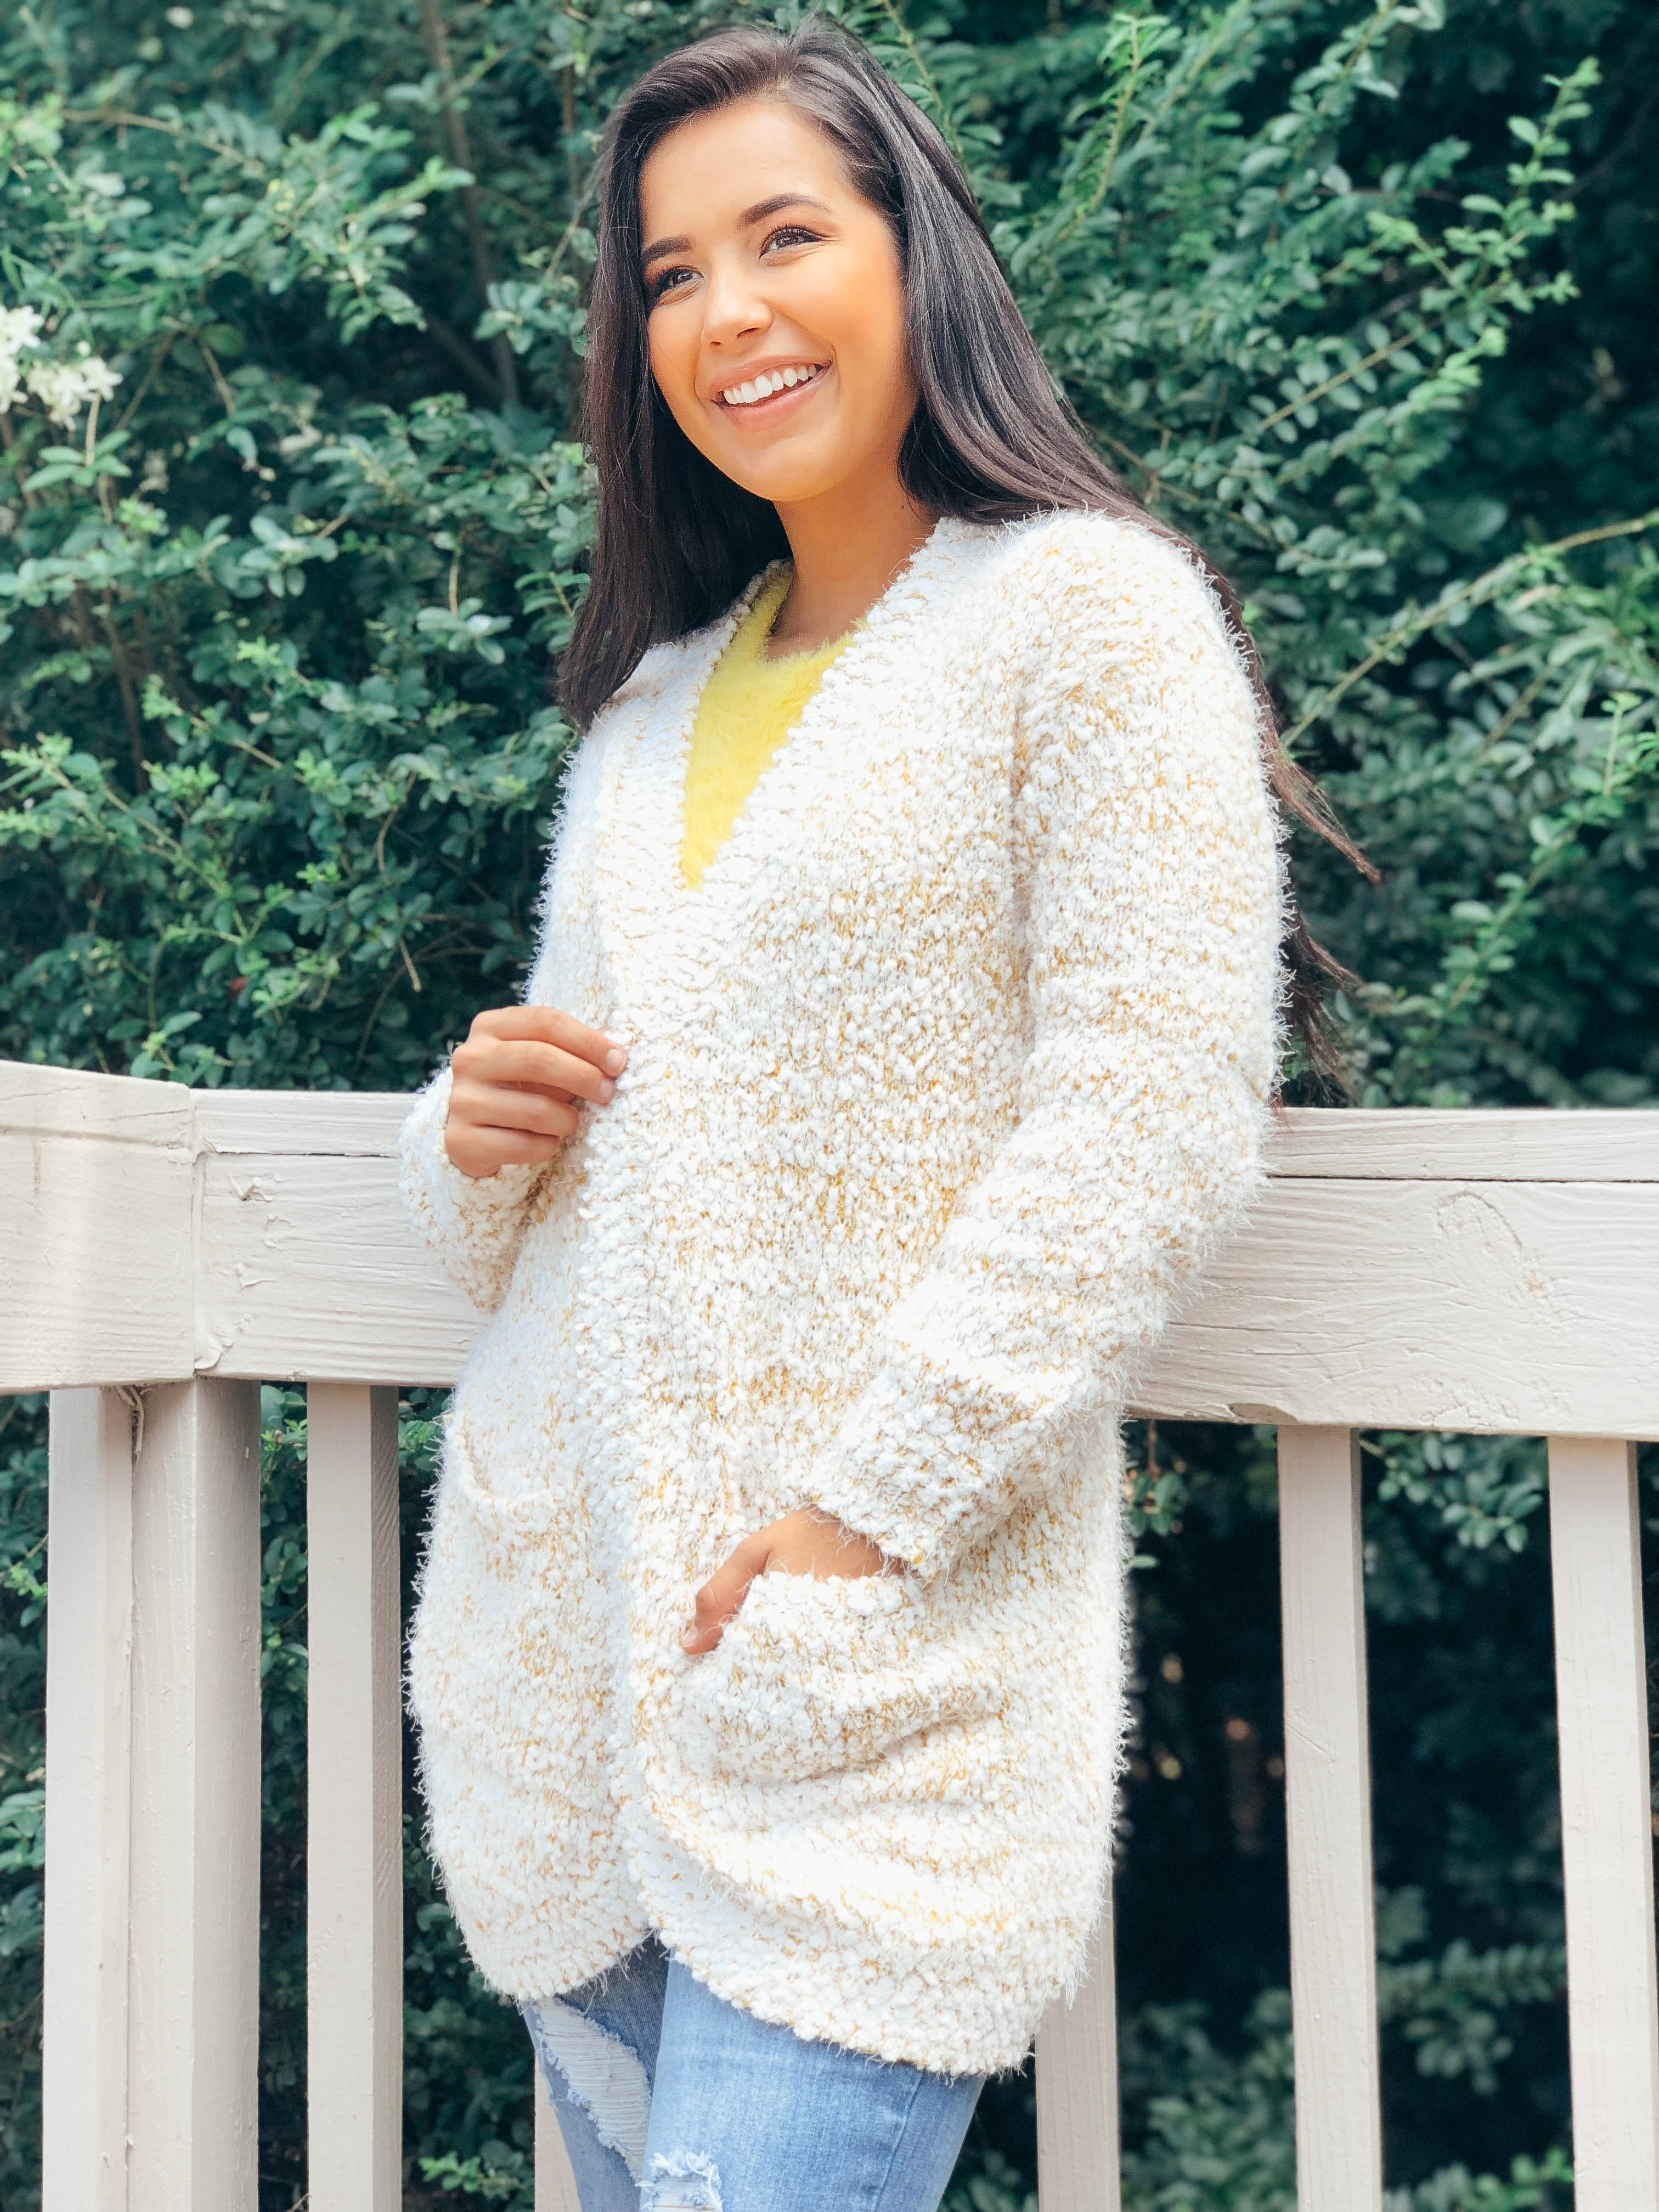 Roasted Popcorn Fuzzy Cardigan - The Flawless Babe Boutique